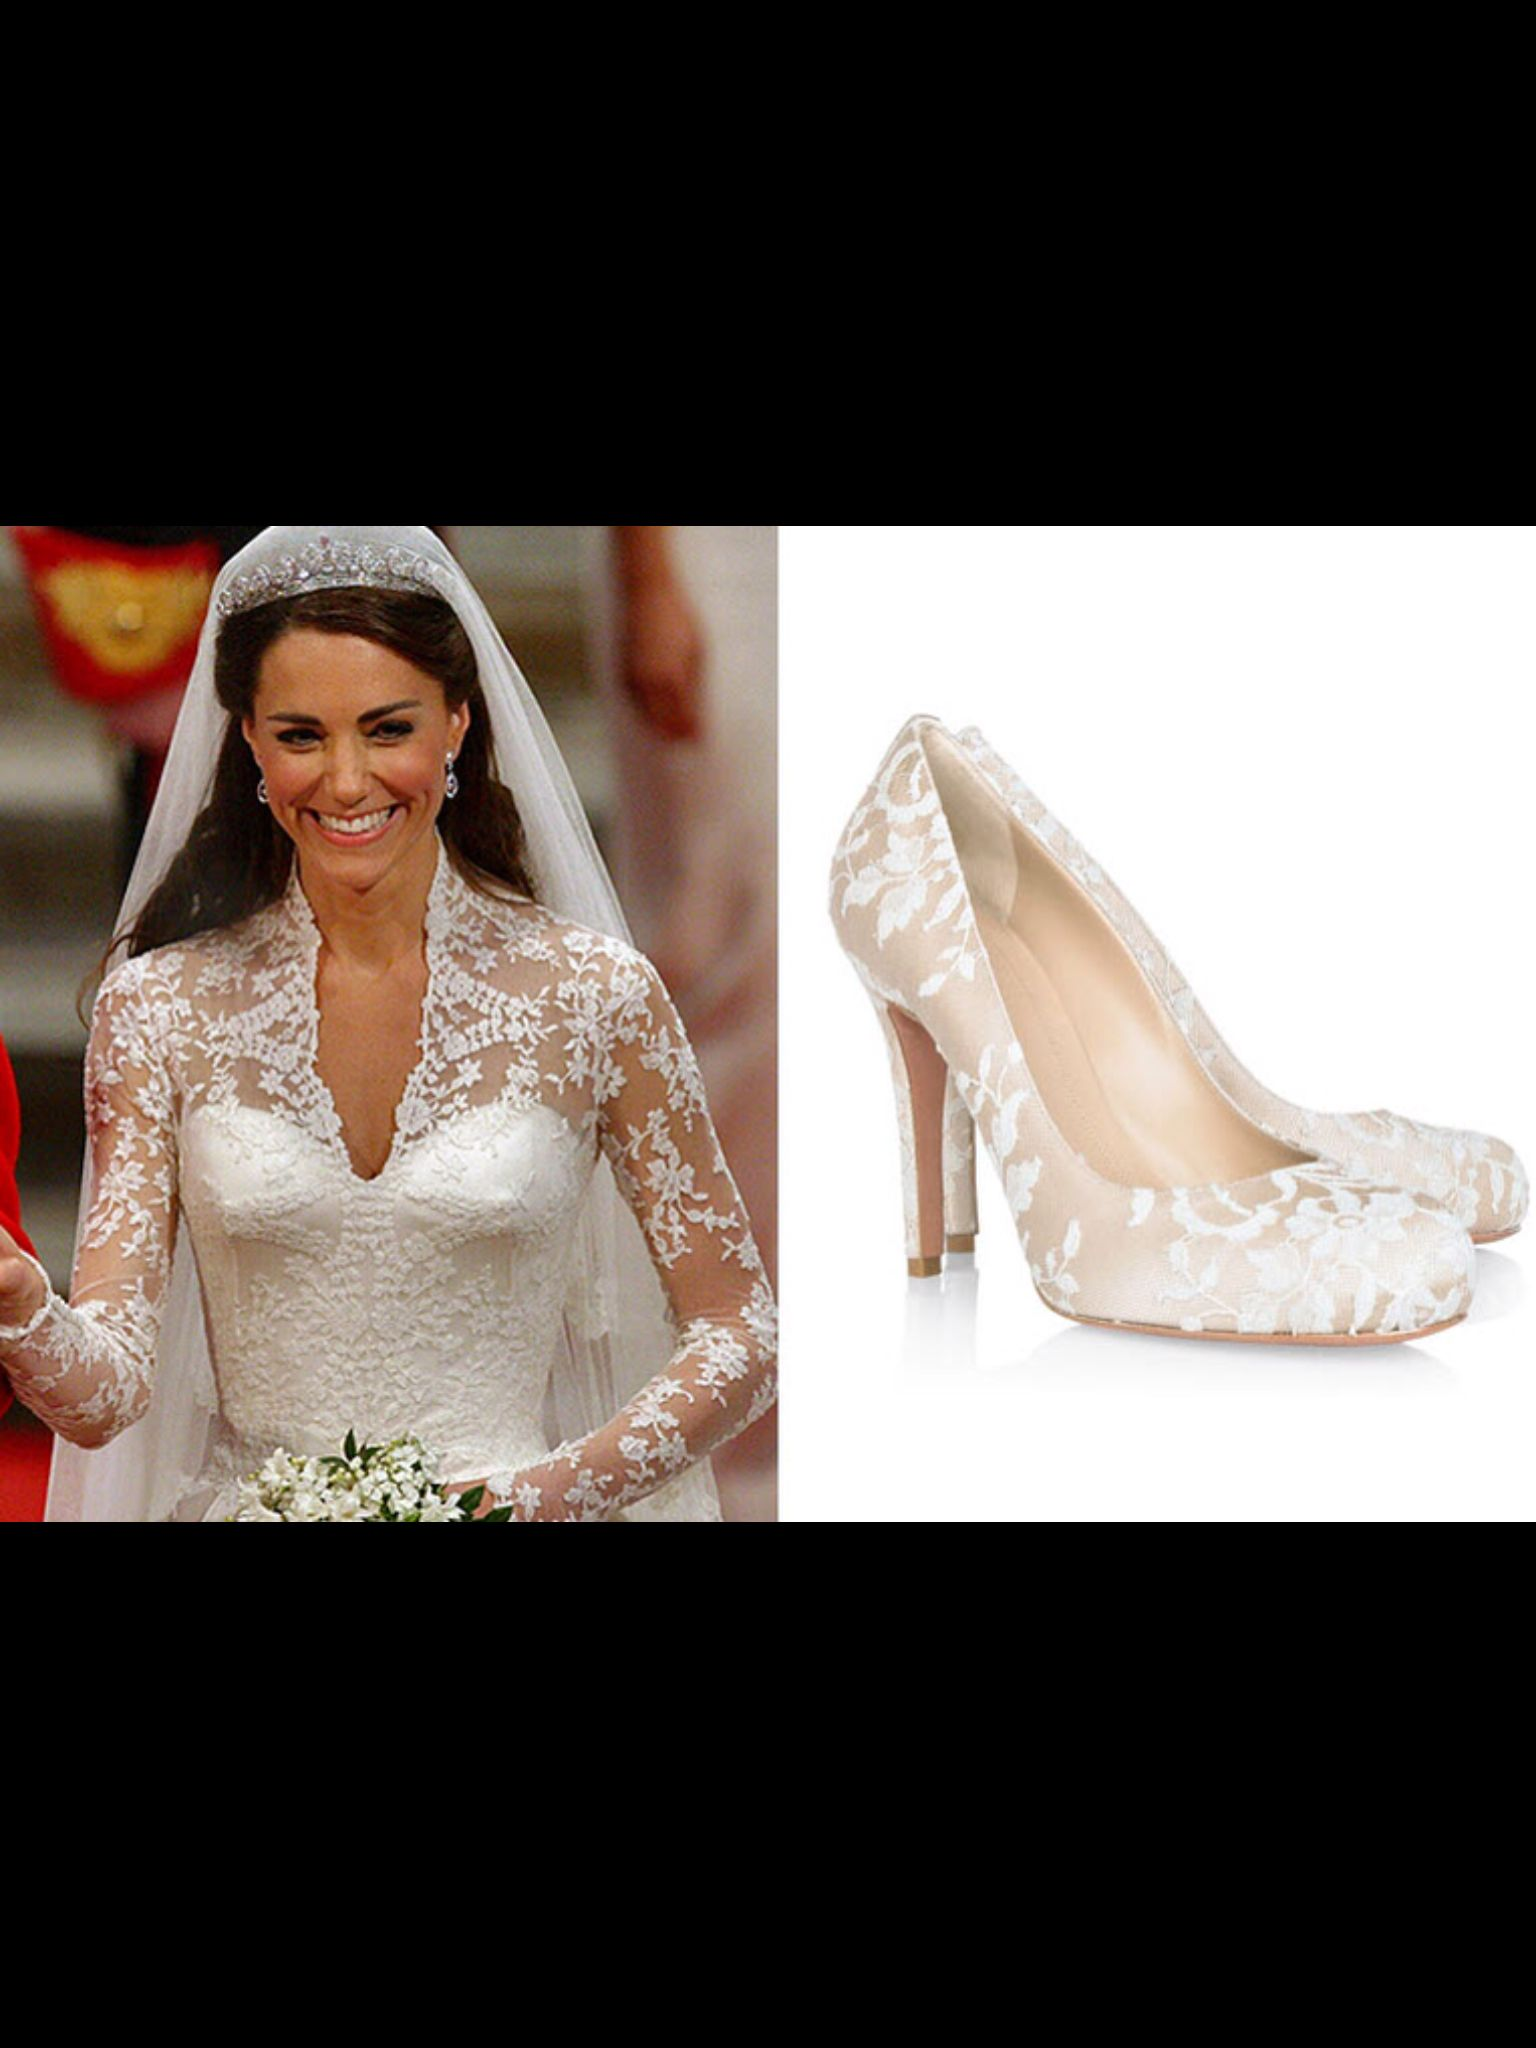 c6bbfbe9828383 The lace embellished shoes that Kate Middleton wore at her marriage to  Prince William.